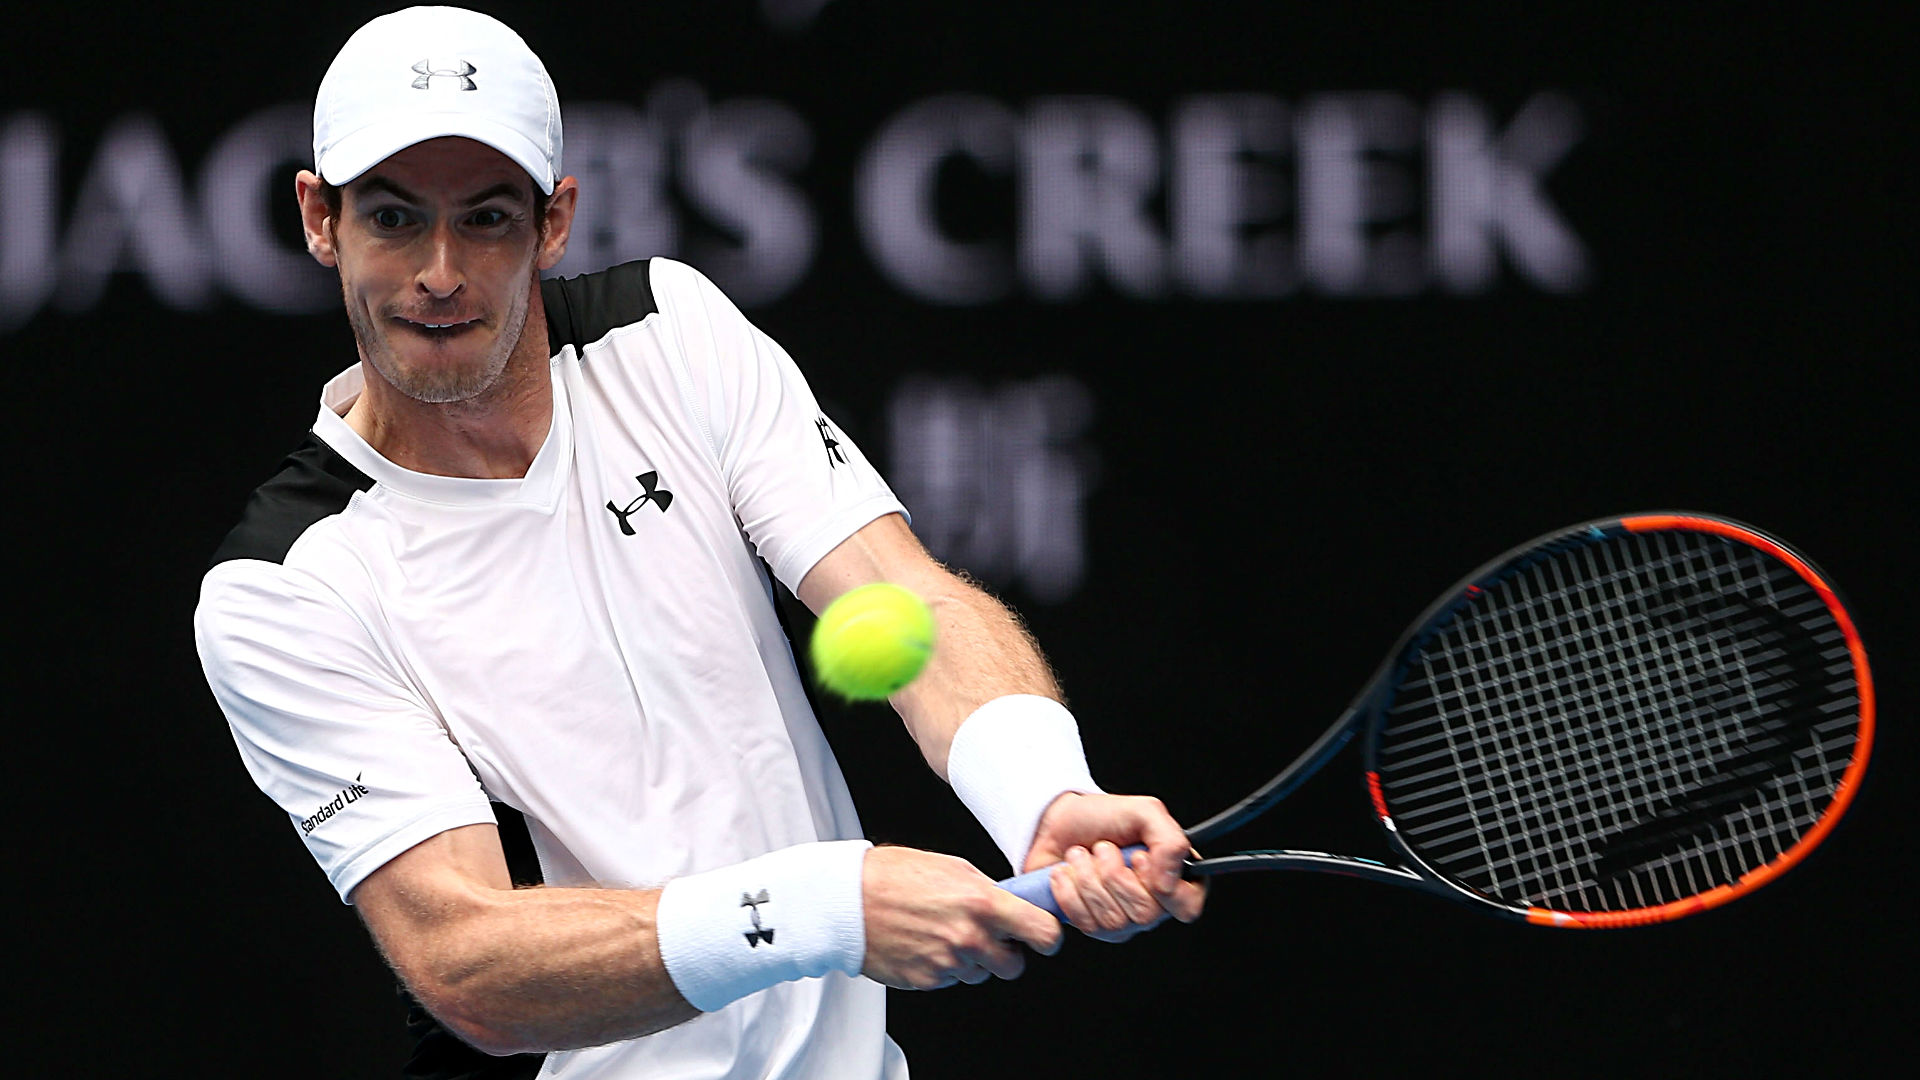 Andy Murray beats big server Sam Groth